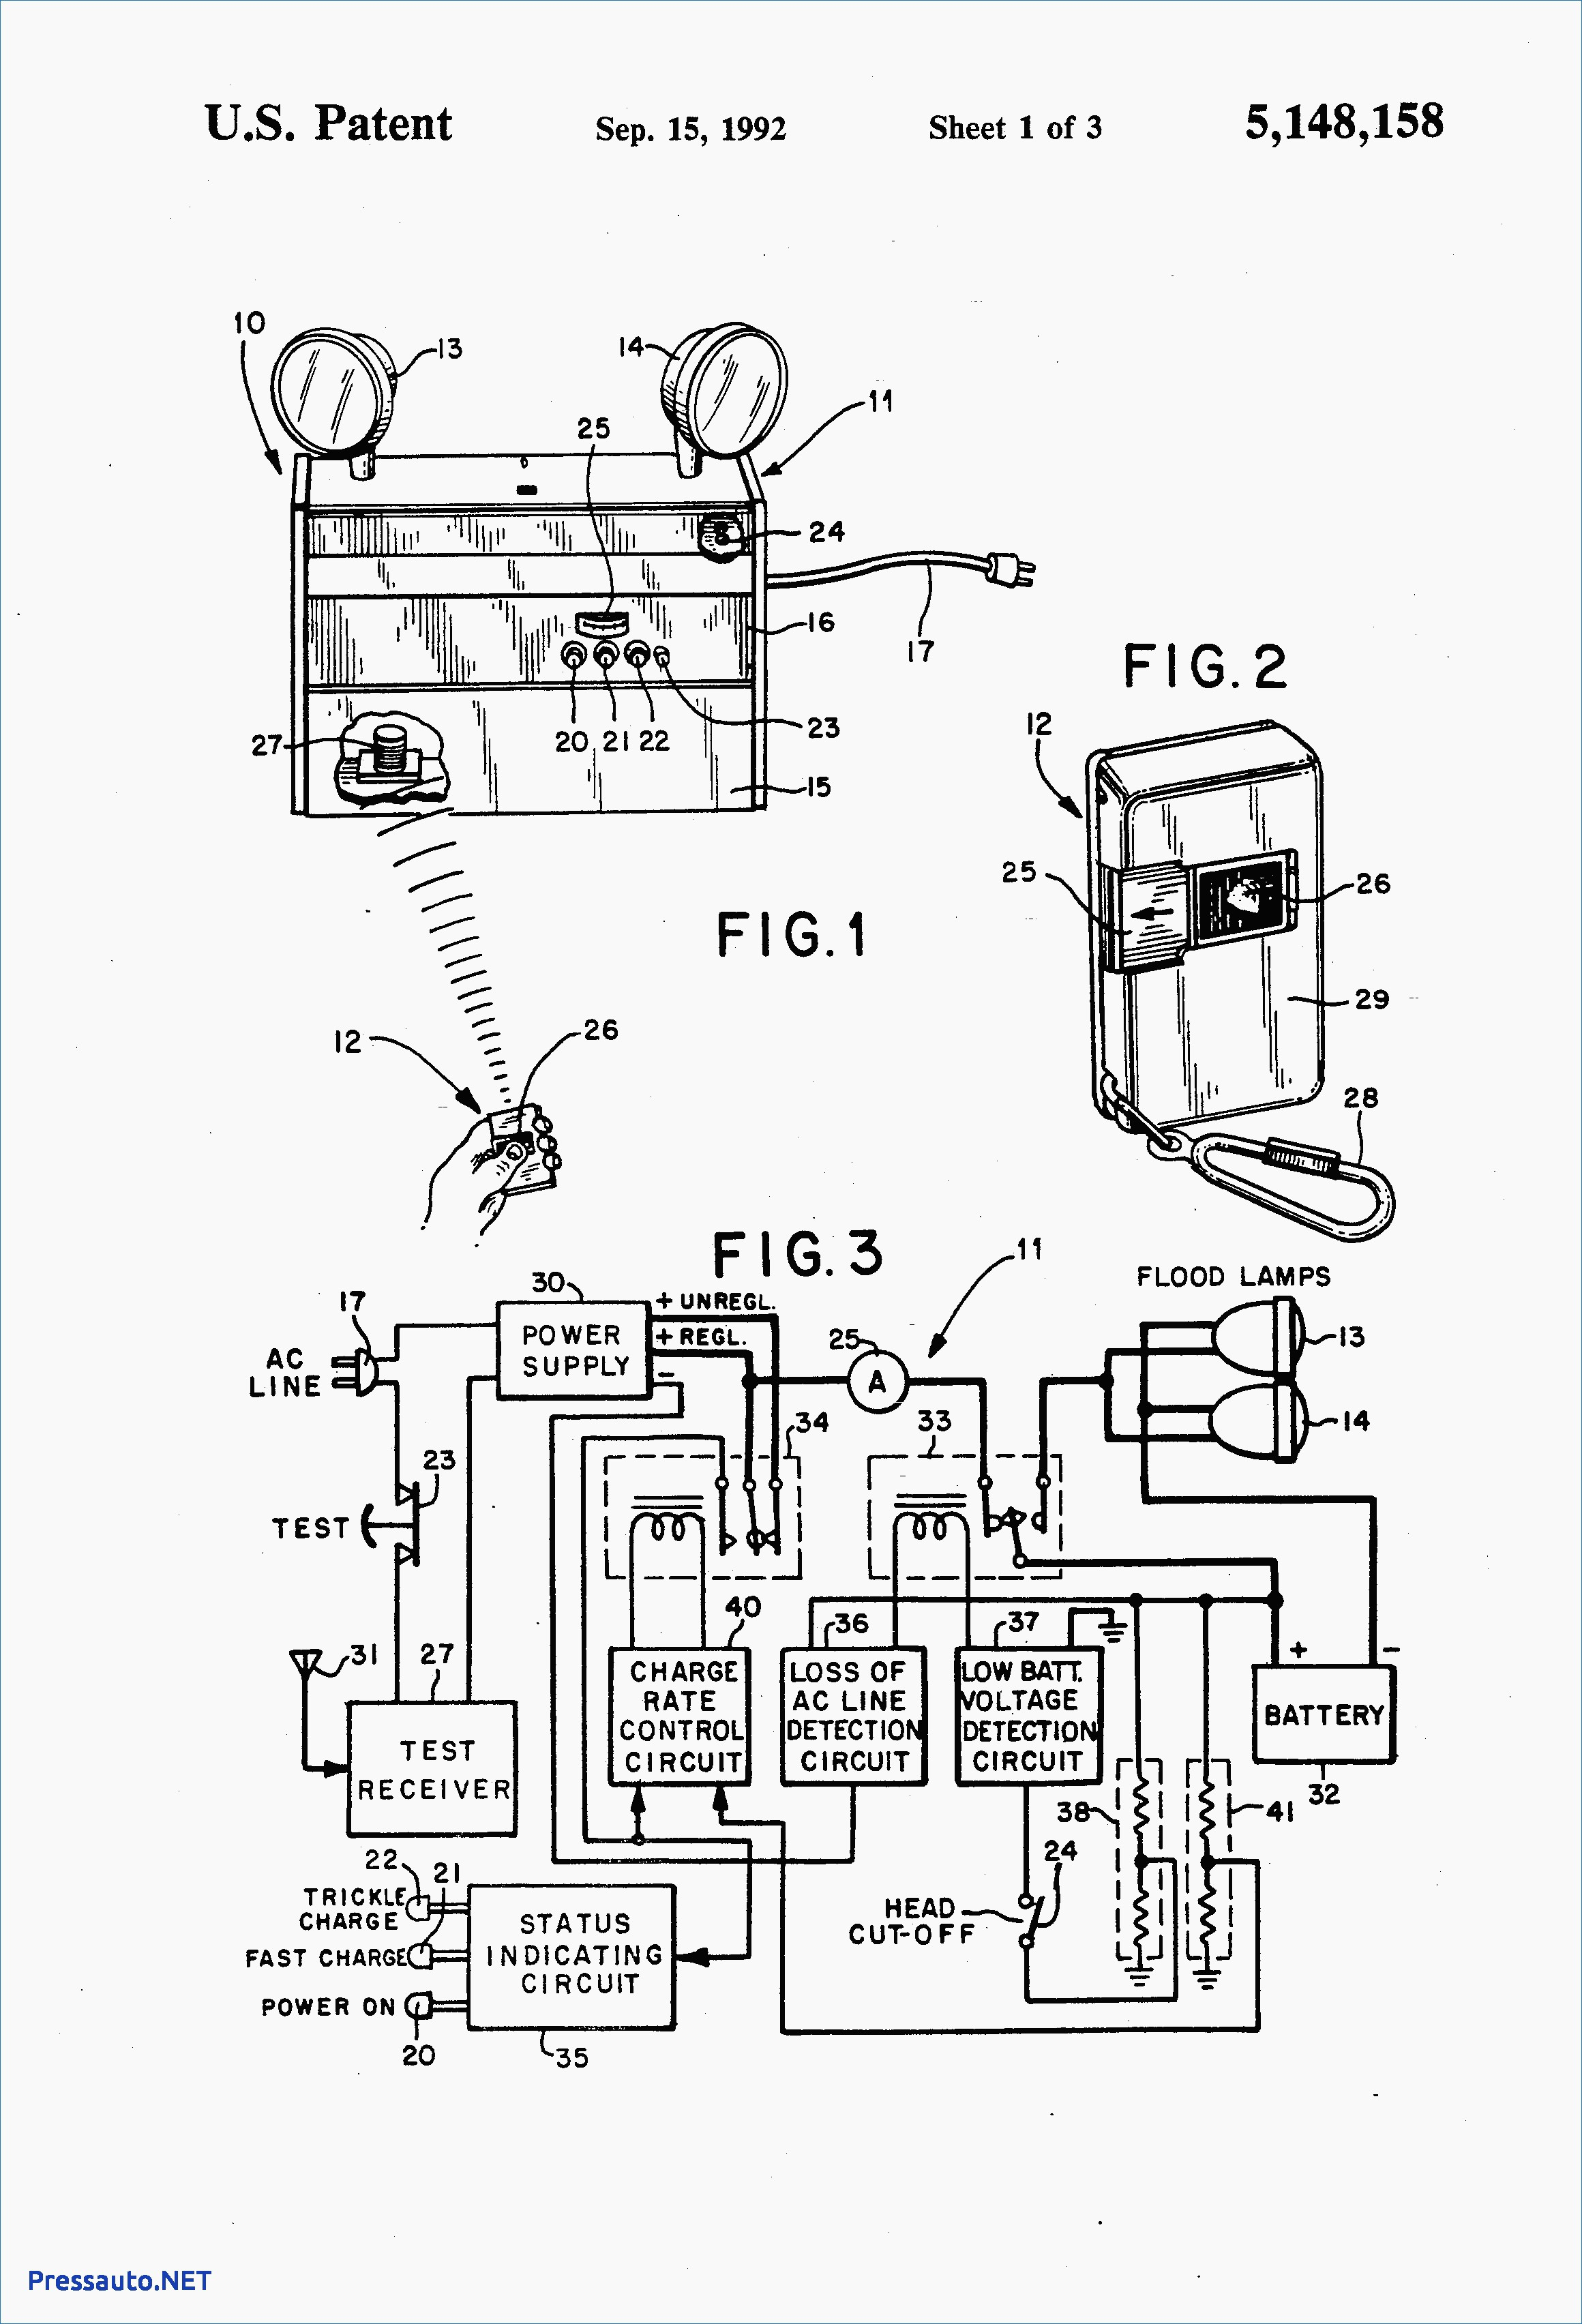 iota emergency ballast wiring diagram Download-iota emergency ballast wiring diagram 1 lamp collection of wiring rh wiringbase today GE T12 Ballast 11-c